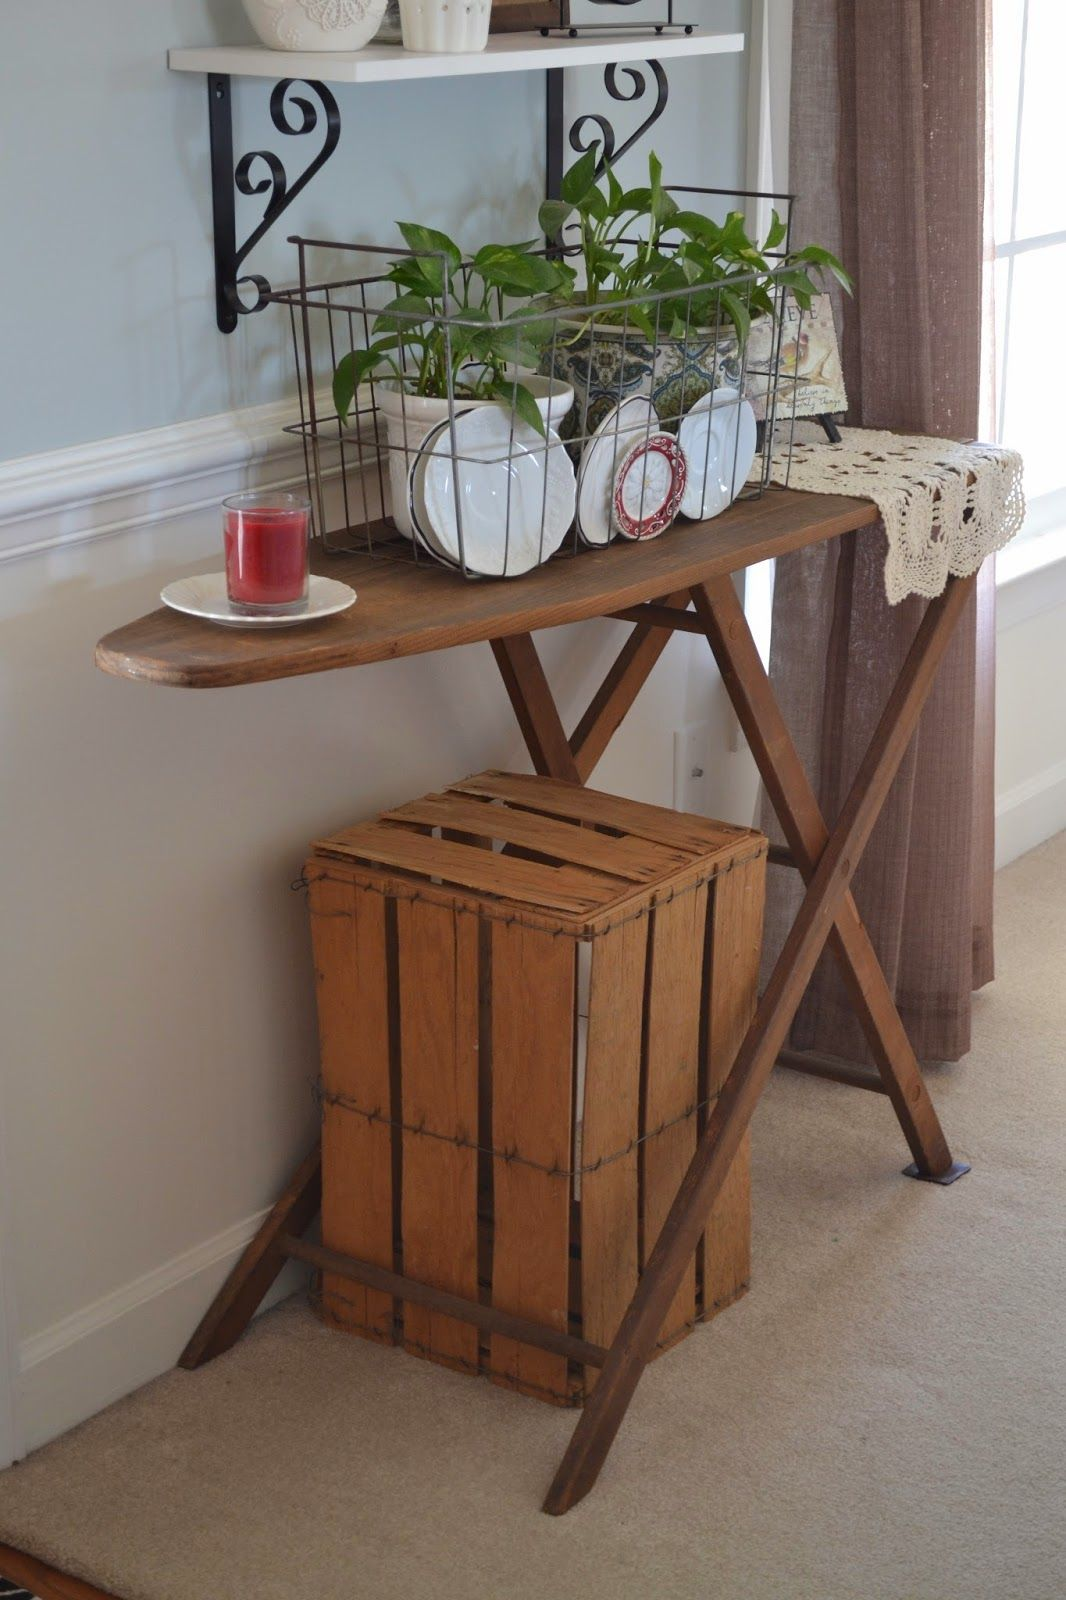 antique ironing board decorating - Google Search - Antique Ironing Board Decorating - Google Search Upcycles